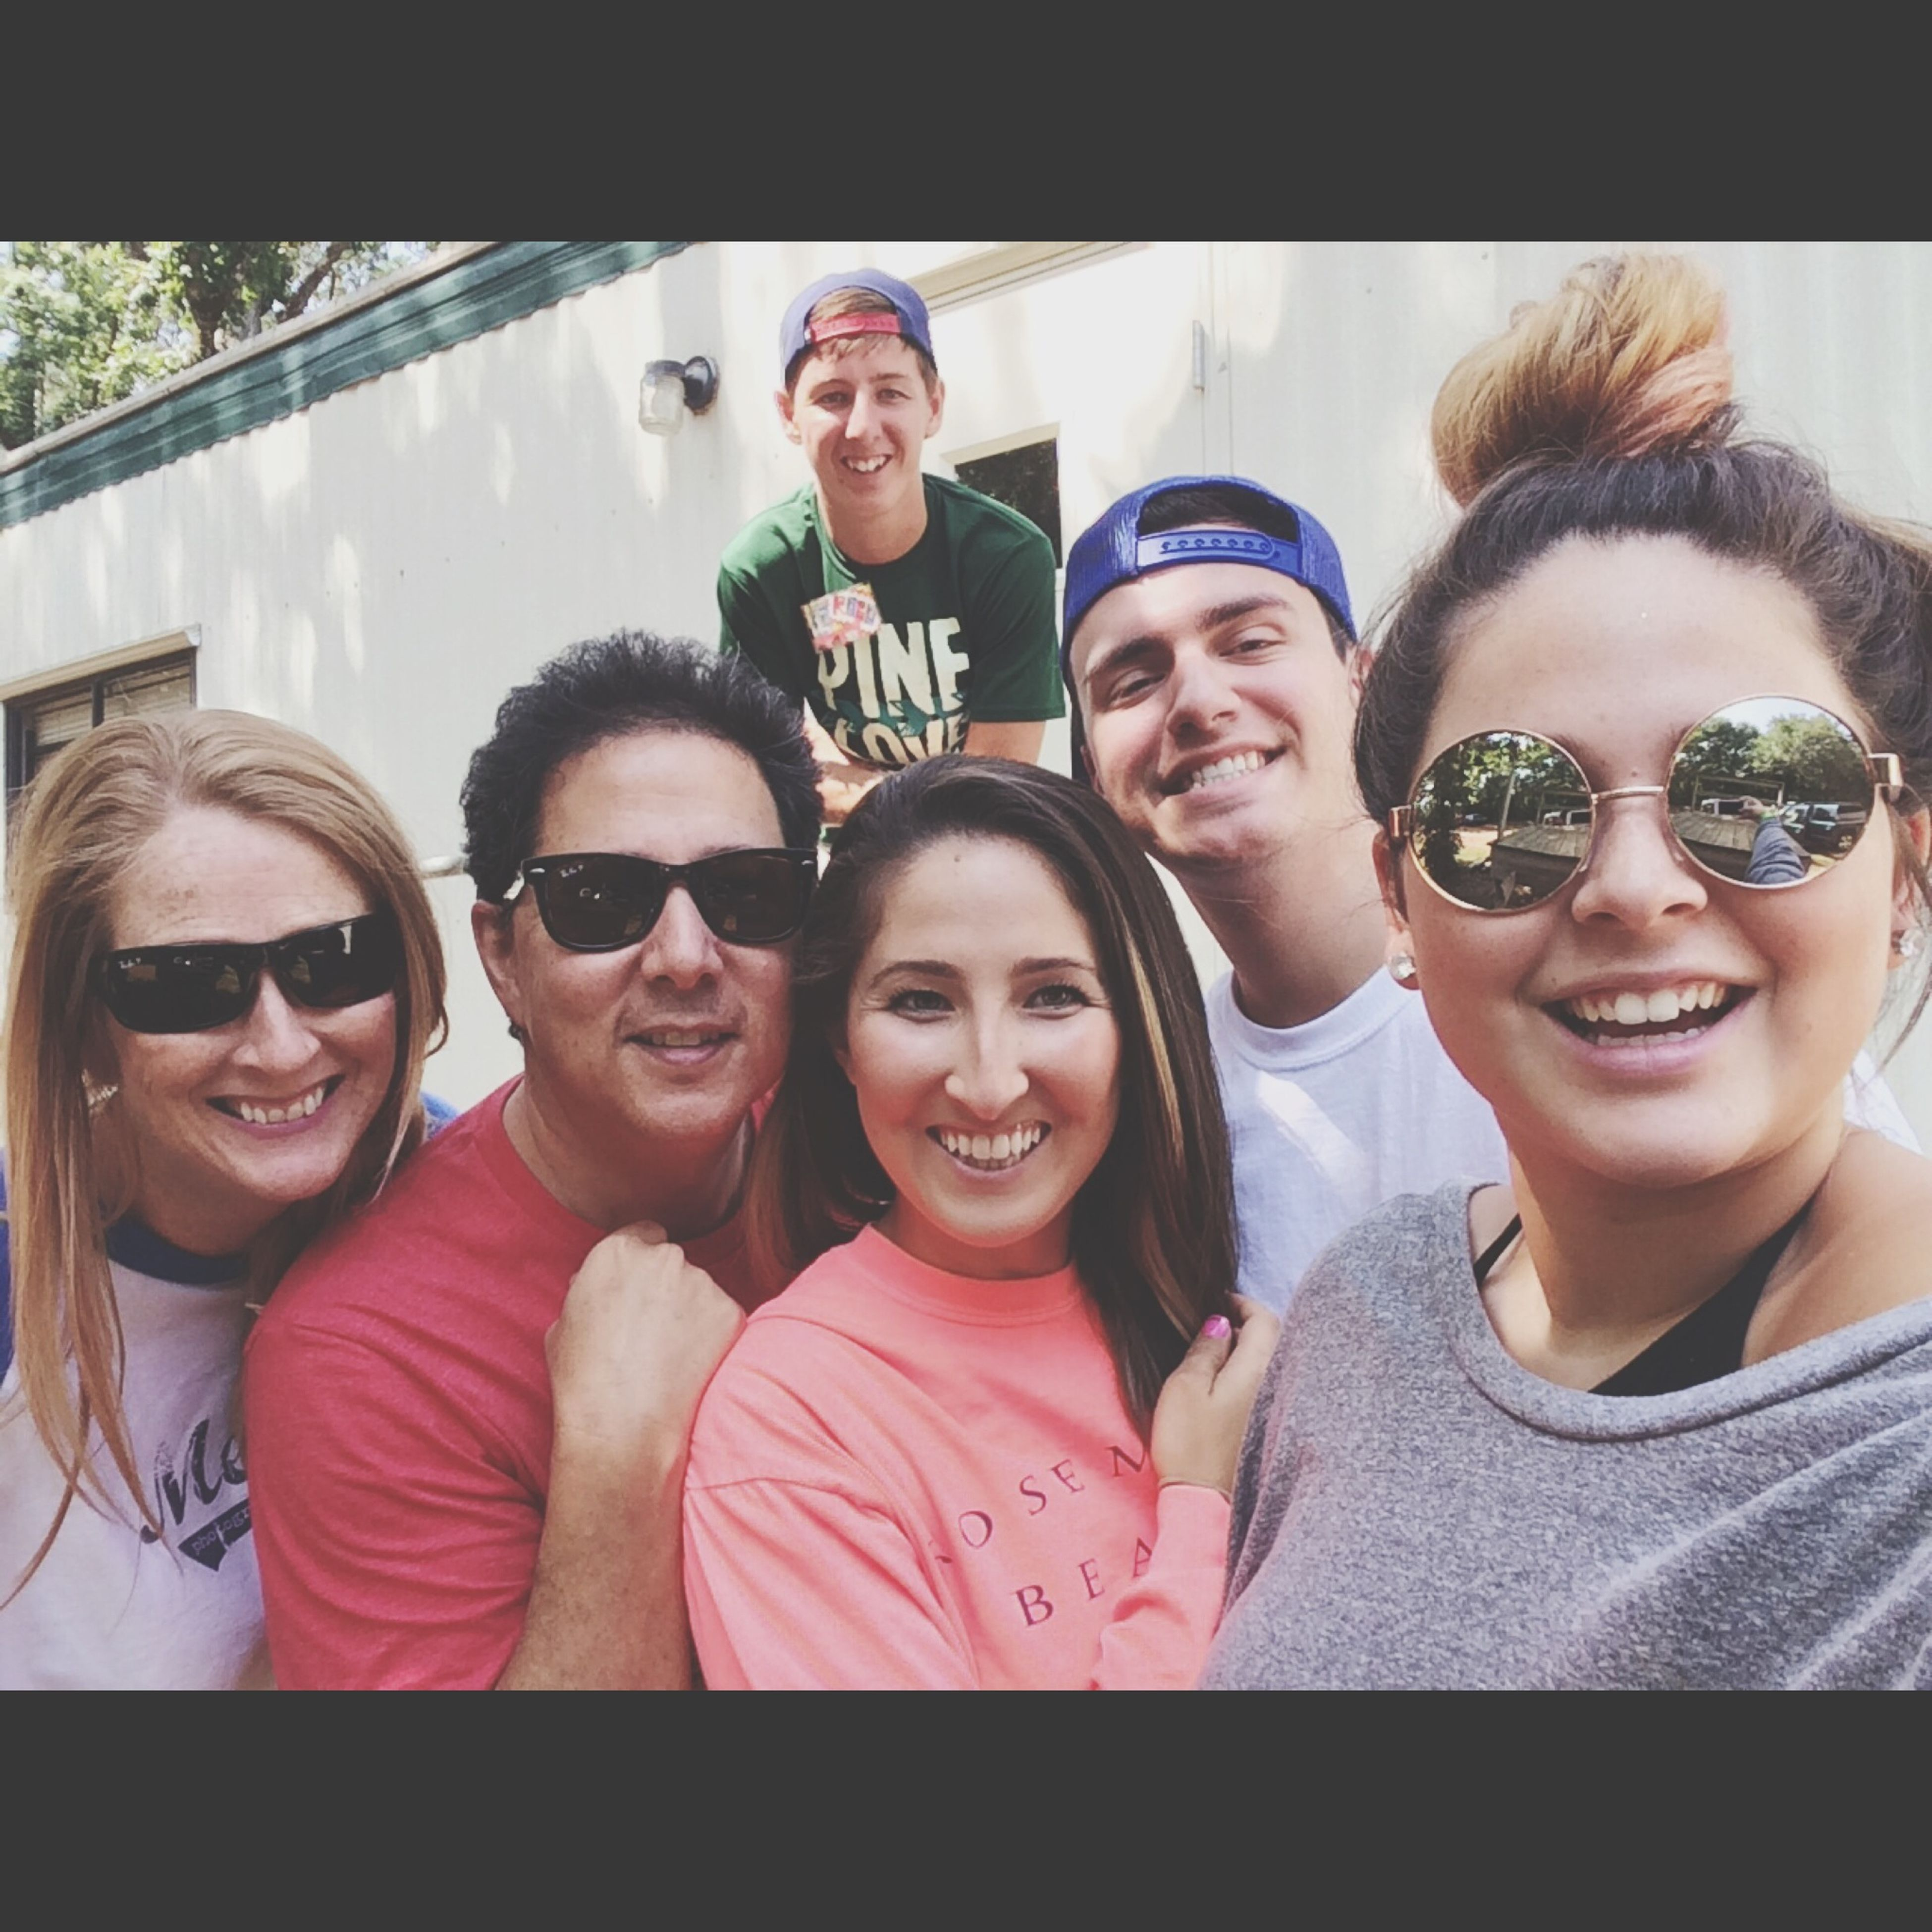 togetherness, bonding, lifestyles, person, leisure activity, portrait, looking at camera, happiness, smiling, love, friendship, front view, young adult, enjoyment, fun, young women, casual clothing